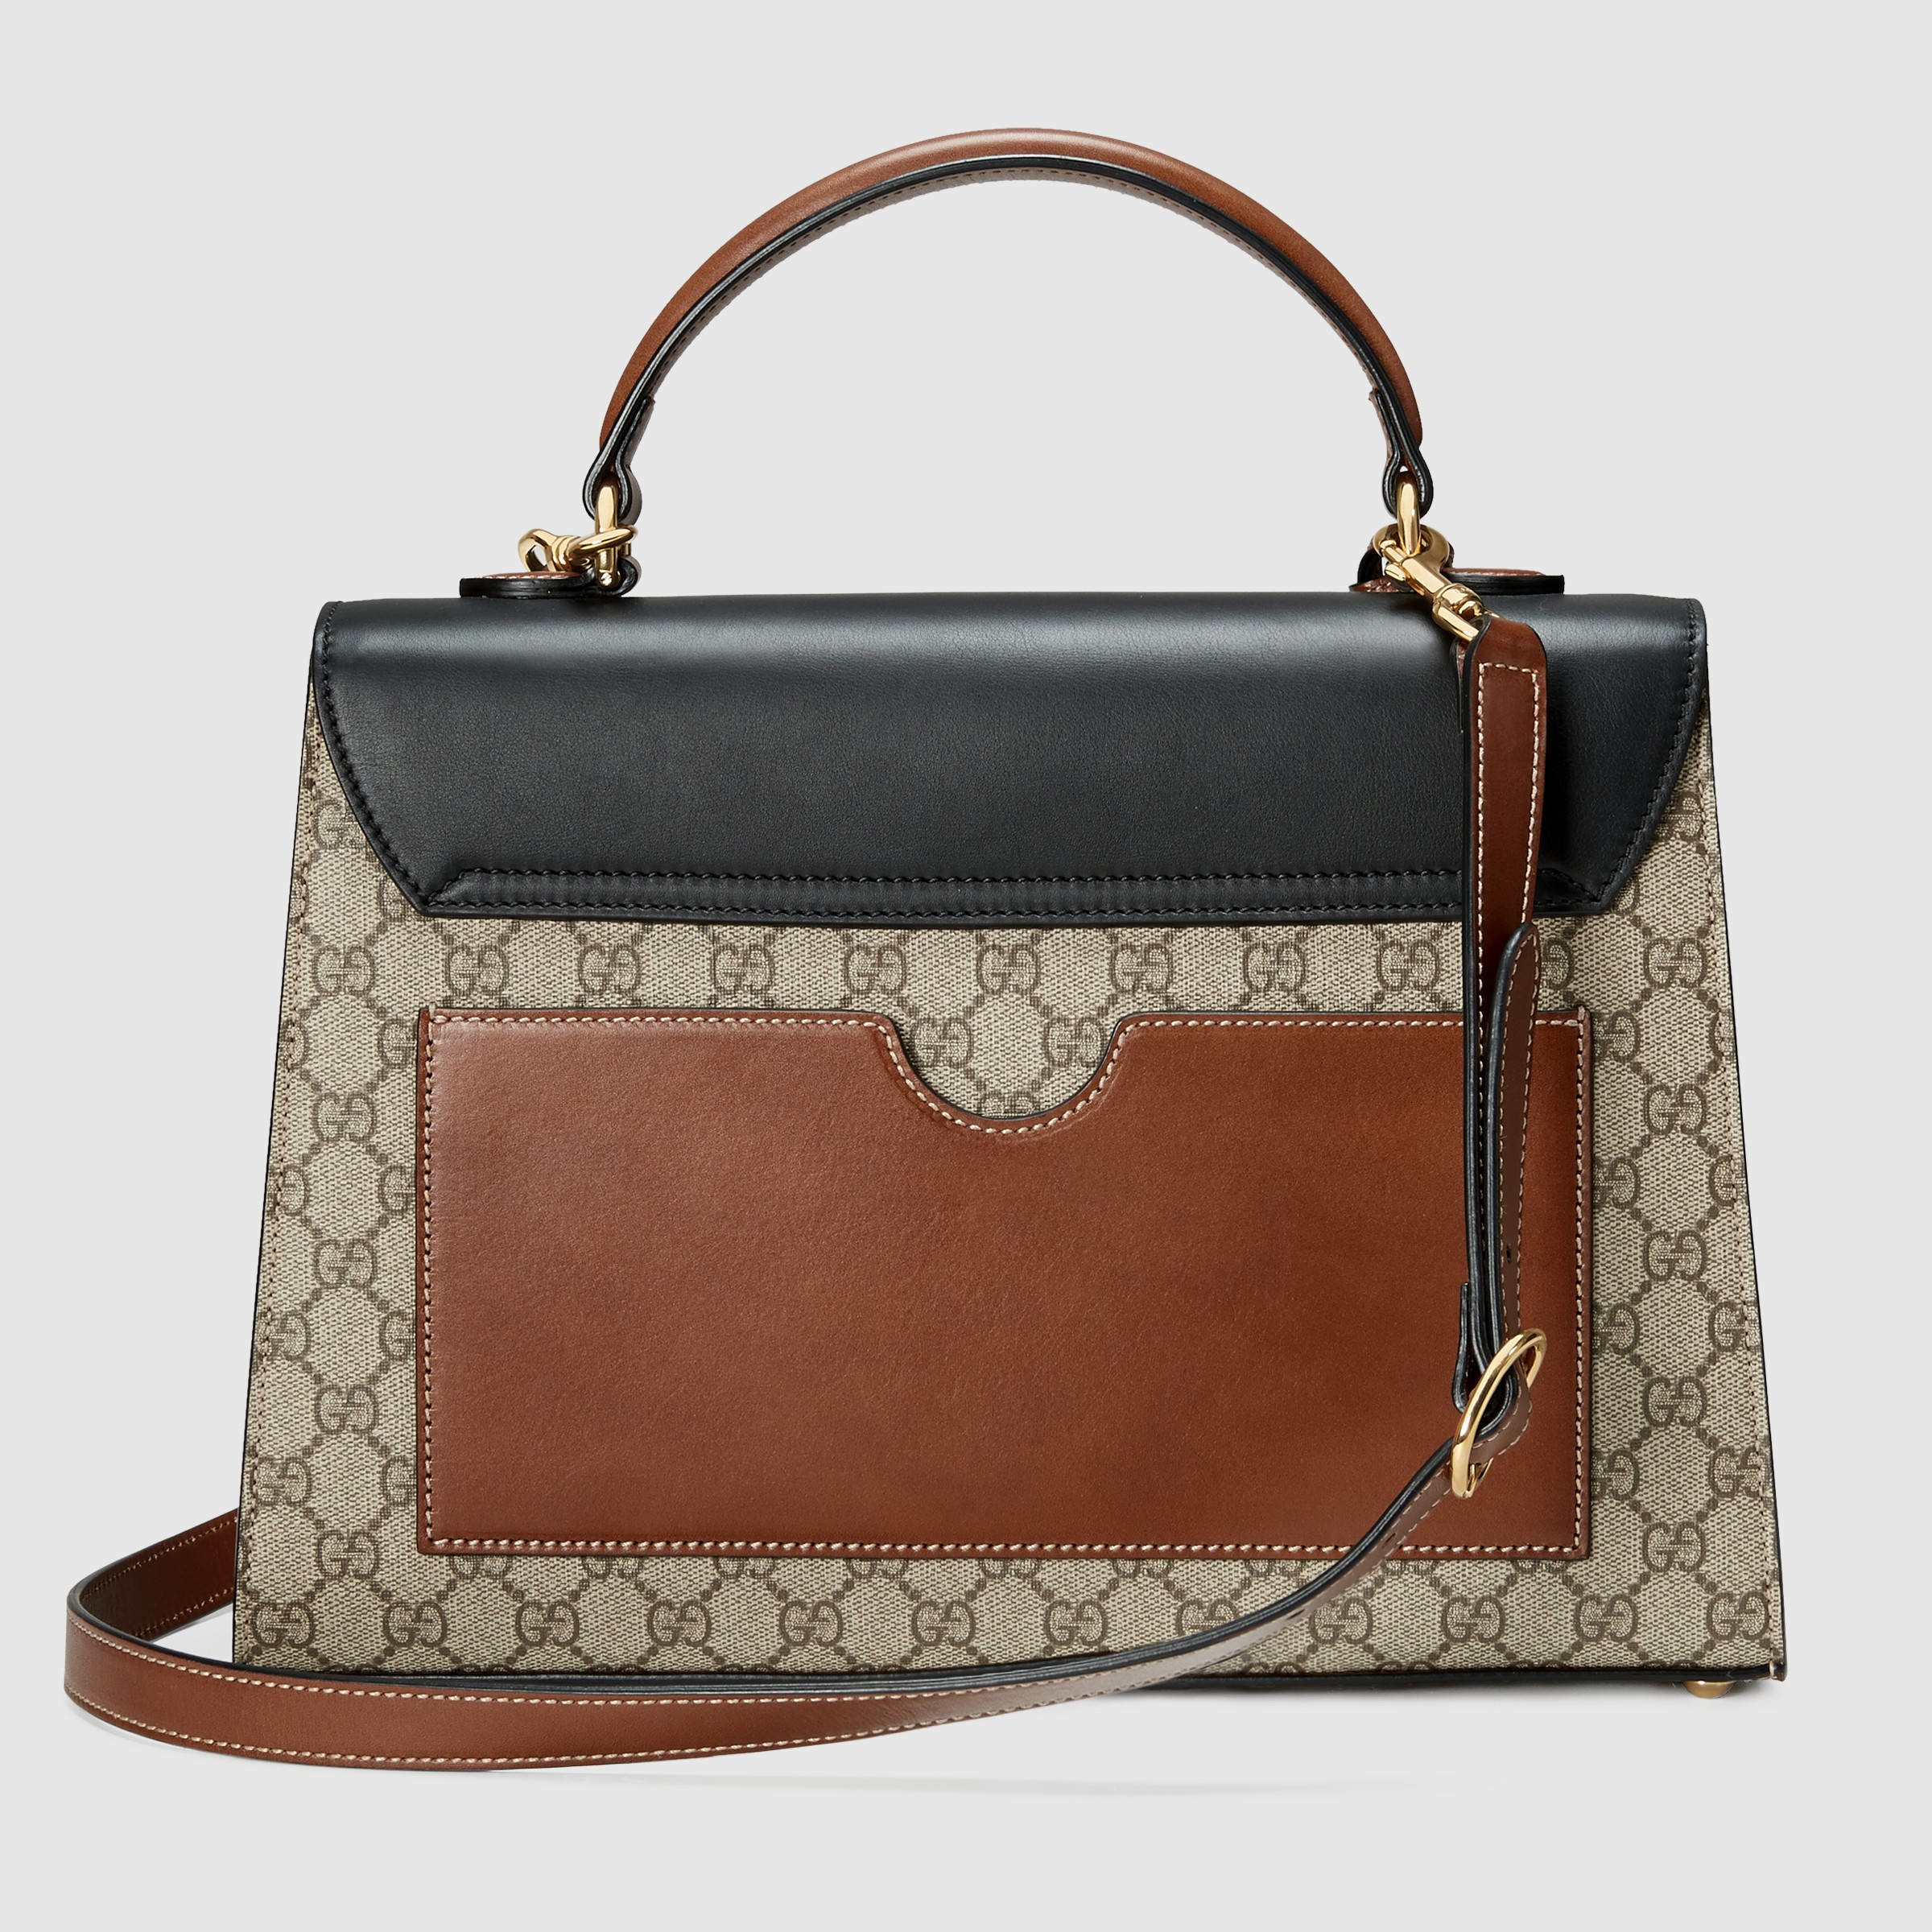 71f7193715ab92 Gucci Padlock Small Gg Top Handle Bag in Black - Lyst